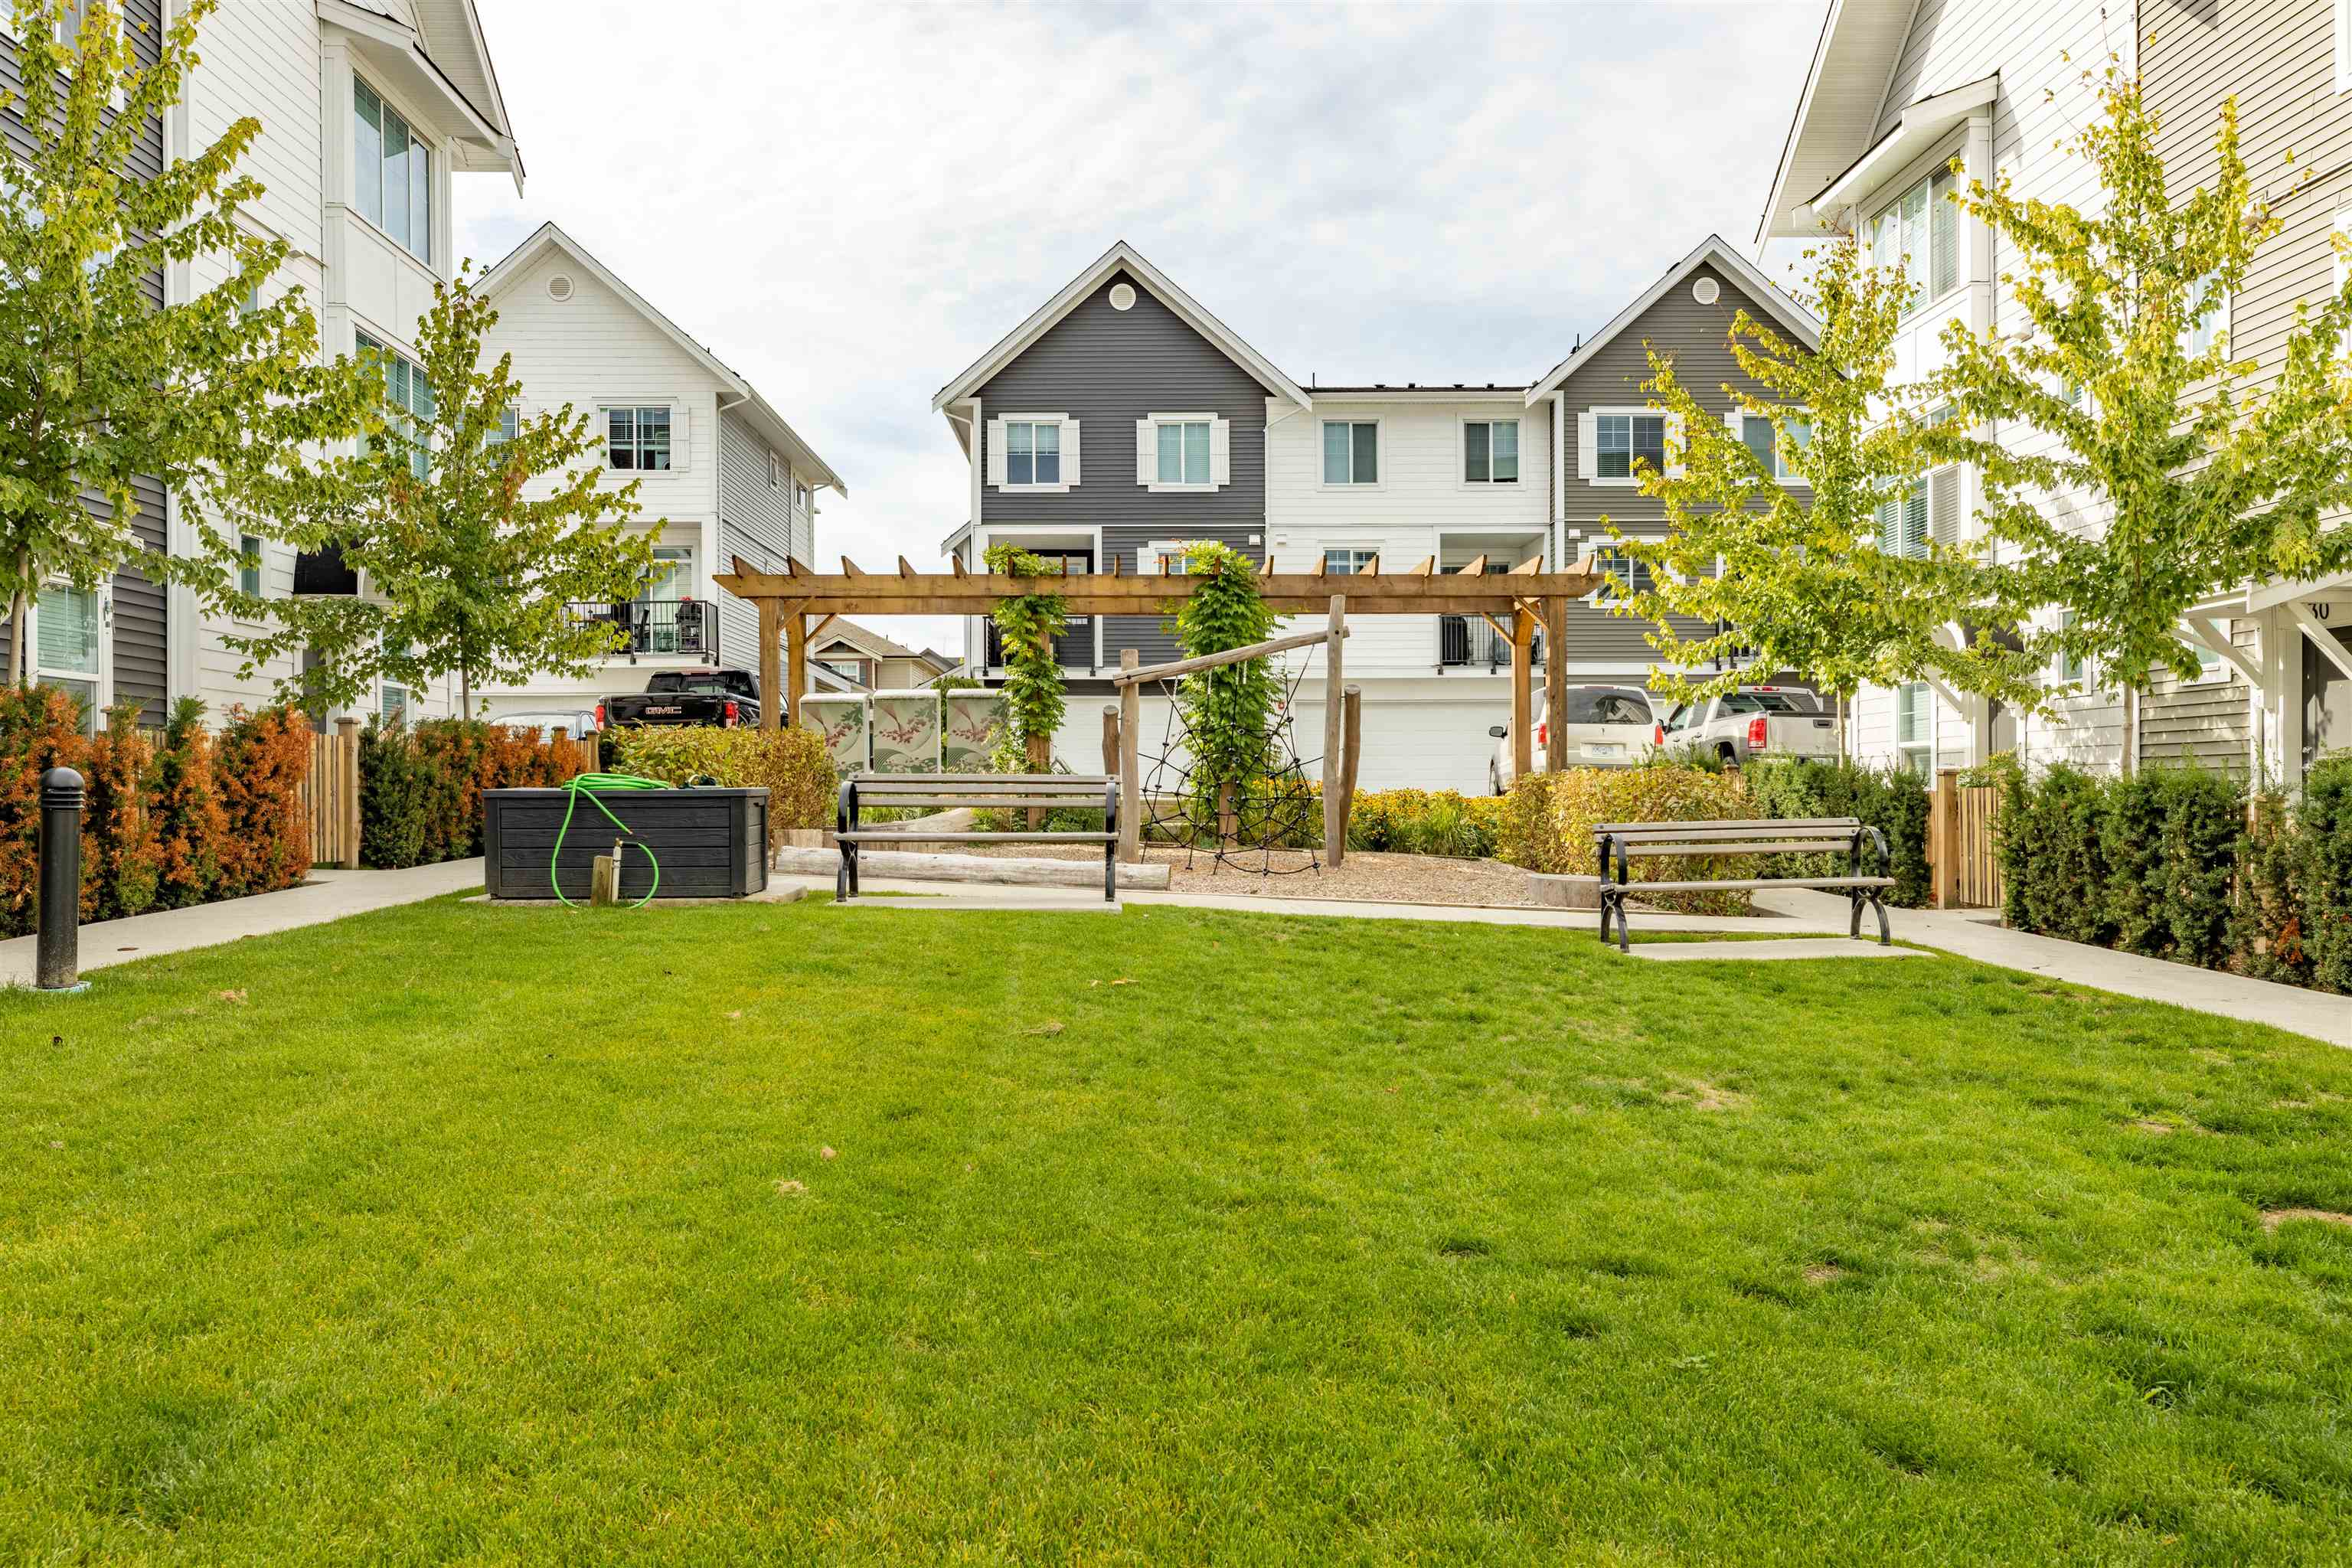 6 20451 84 AVENUE - Willoughby Heights Townhouse for sale, 4 Bedrooms (R2616635) - #35